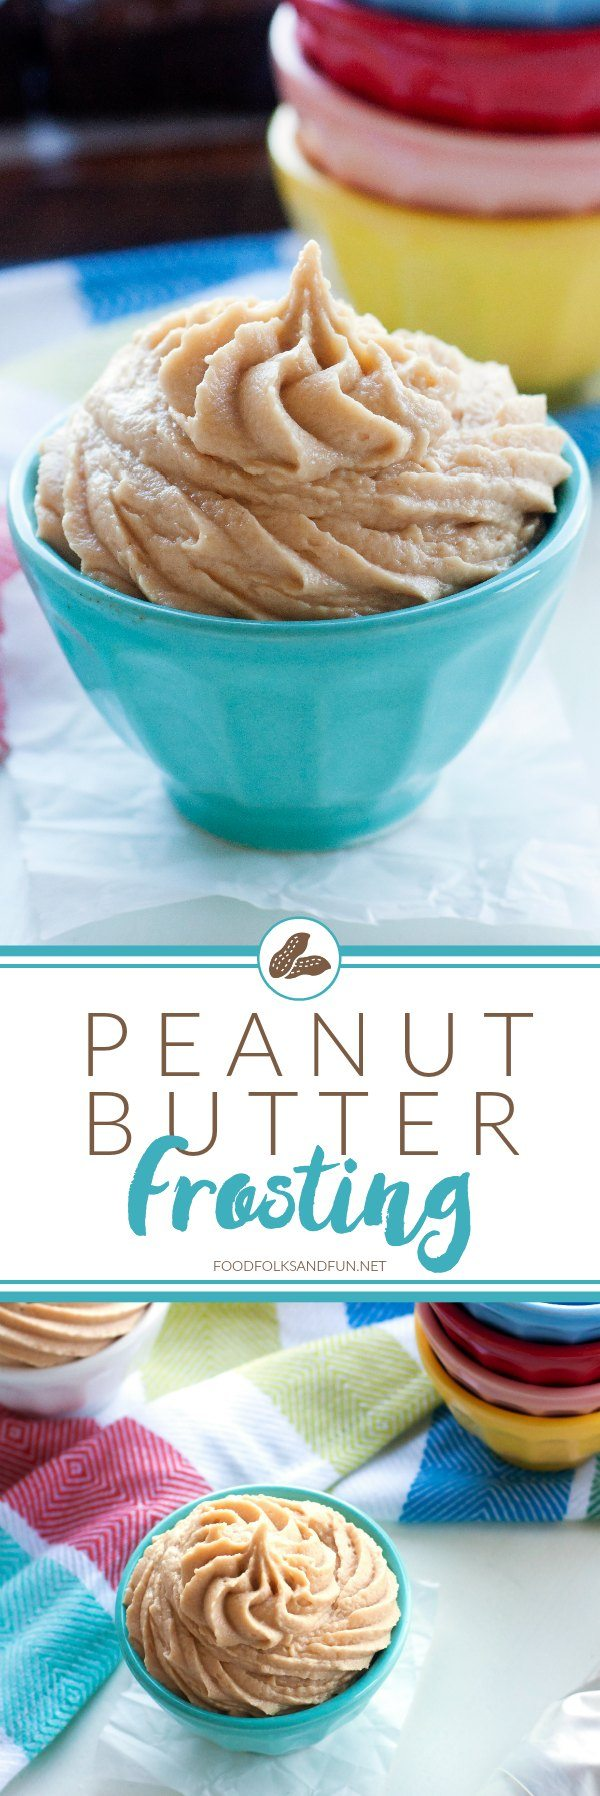 This peanut butter frosting is light, creamy, and it has just the right amount of sweetness. This recipe is the perfect frosting for brownies and chocolate cake!